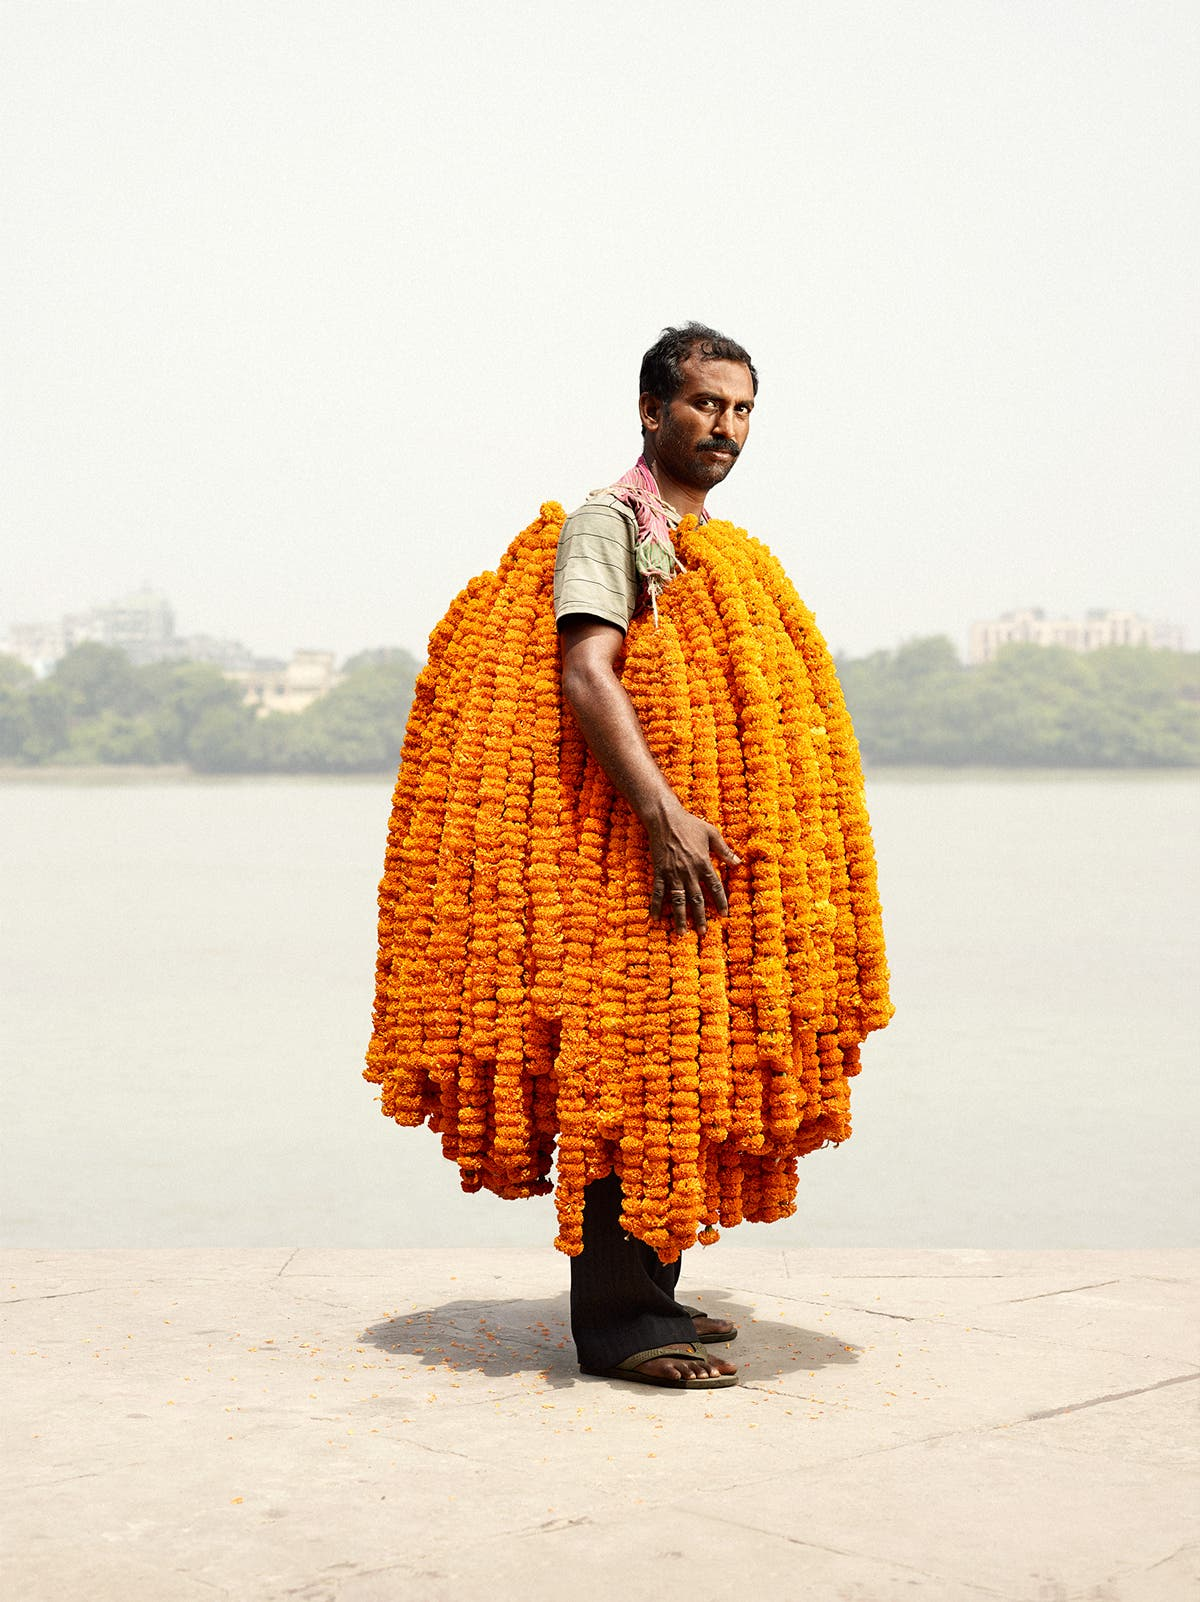 Flower Man: The Men Who Sell Flowers in India